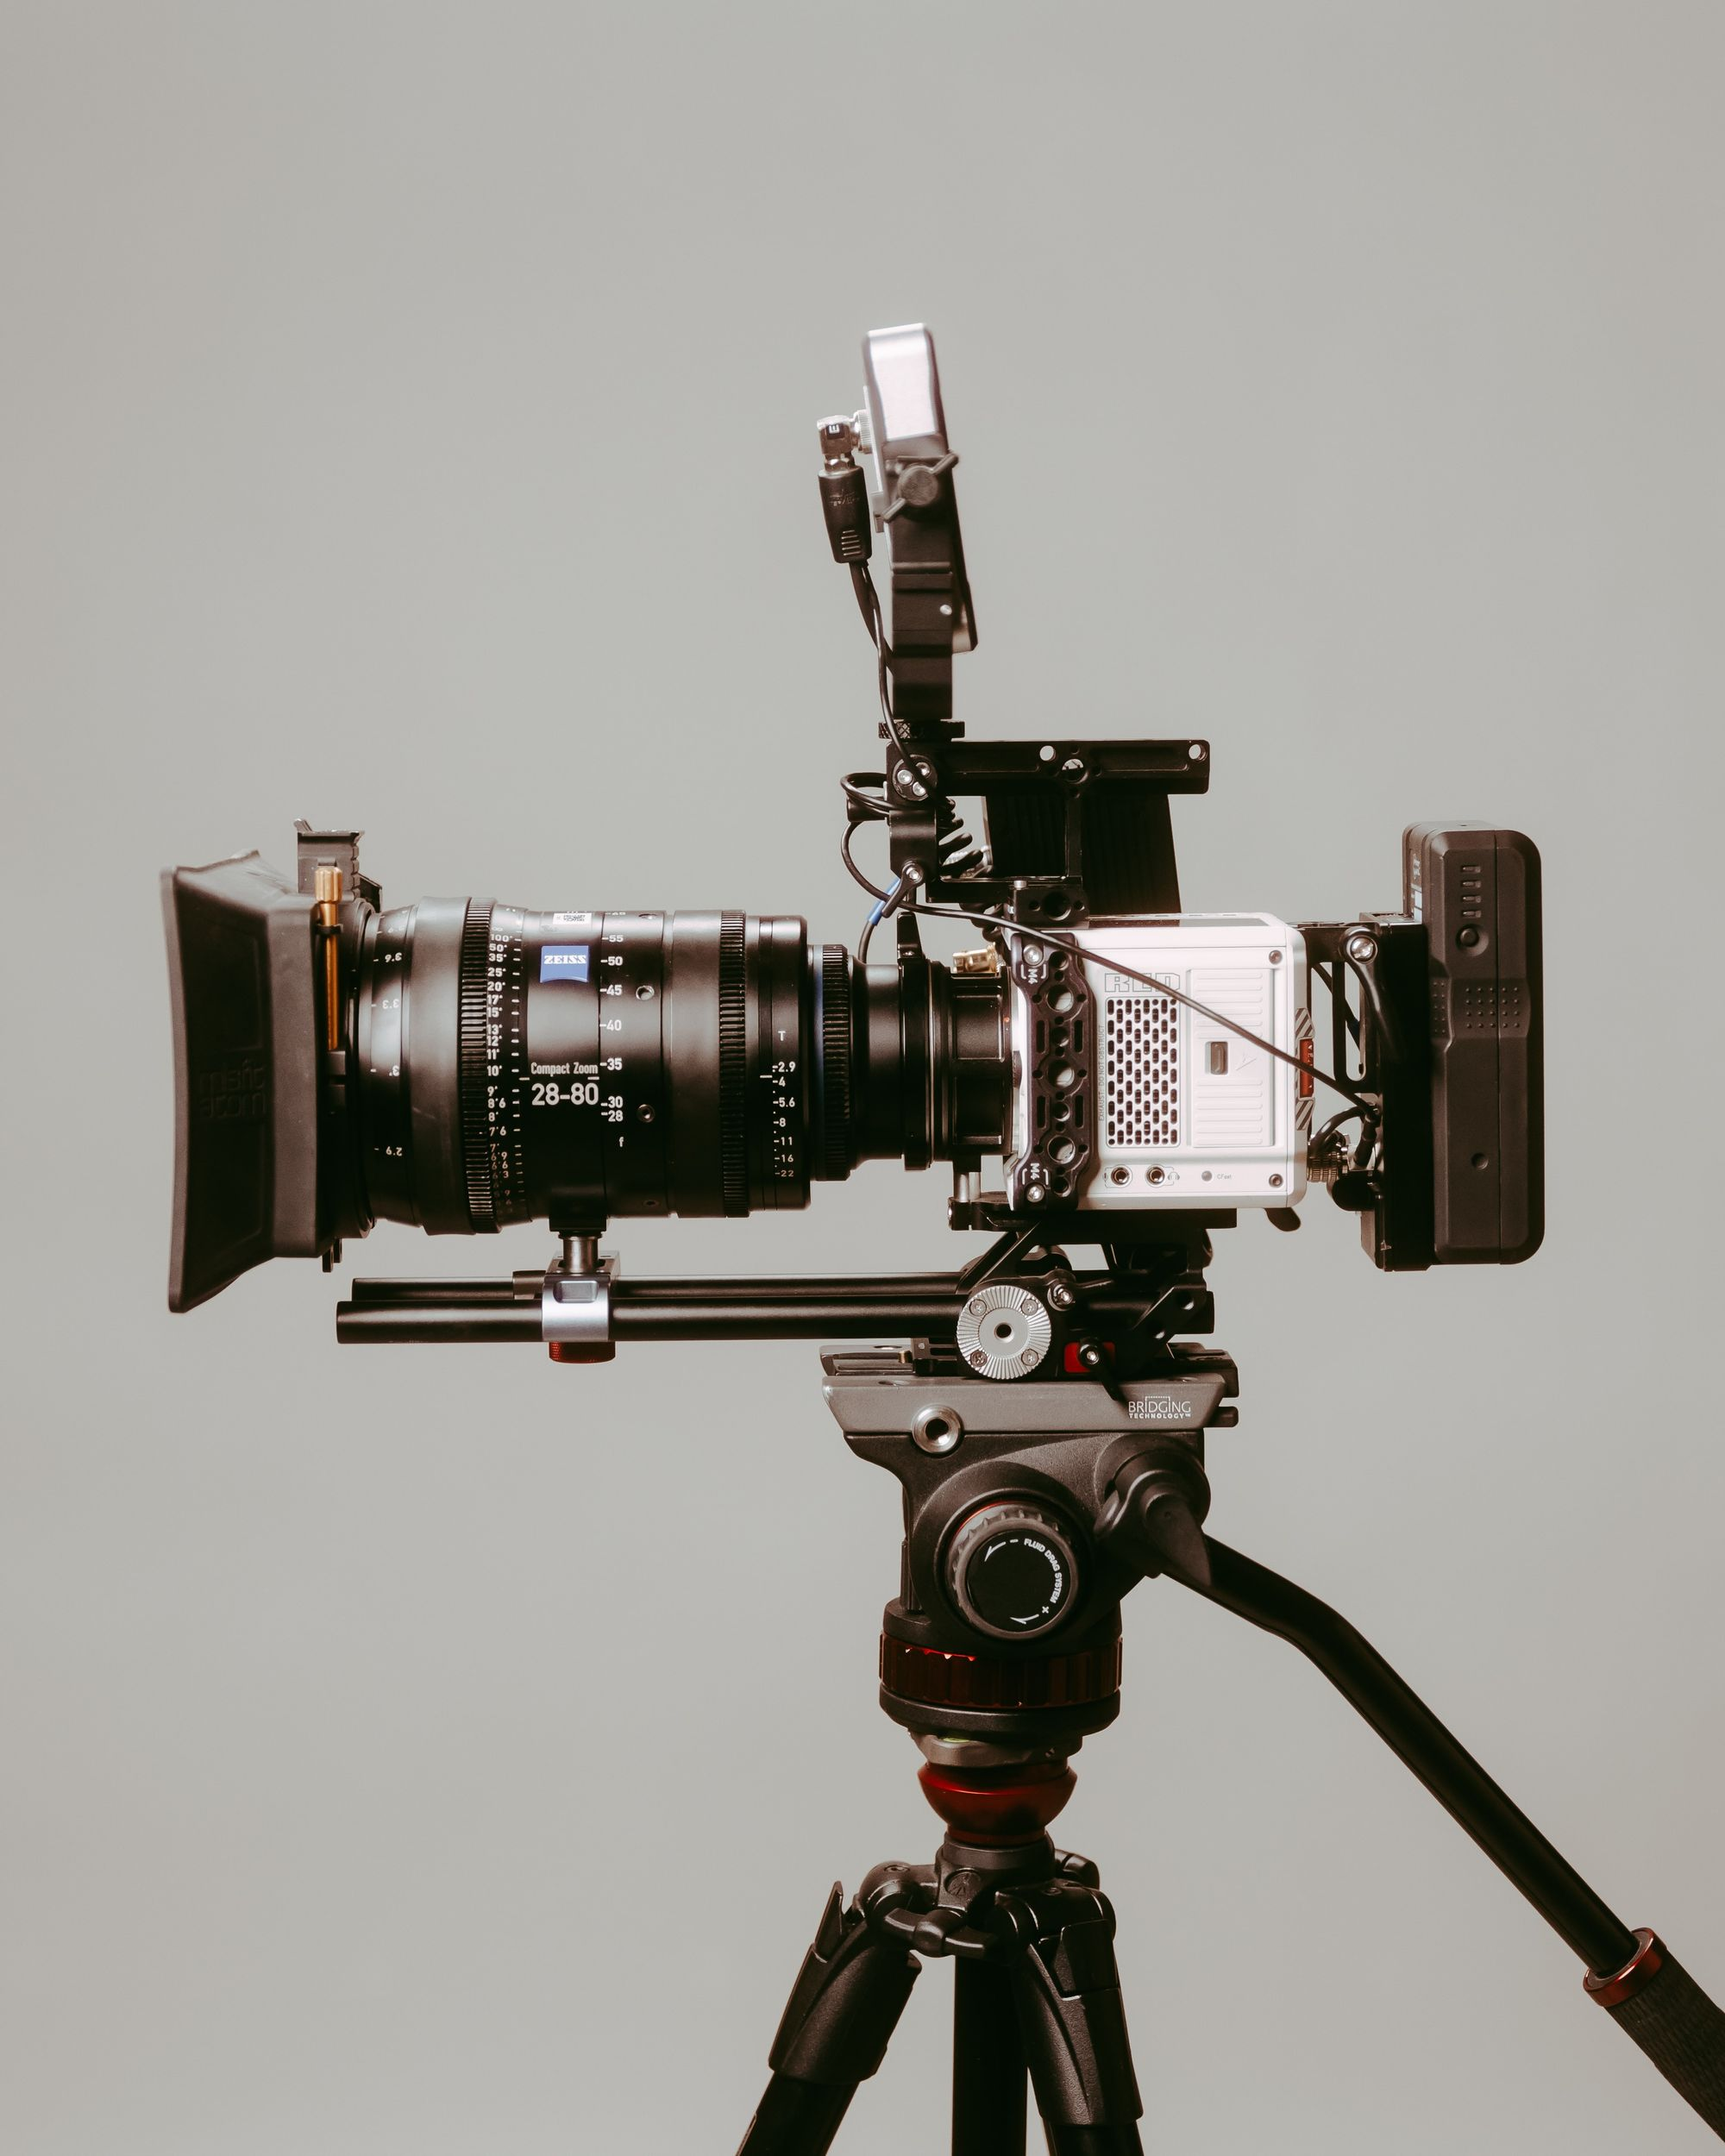 Variable frame rates with a RED camera